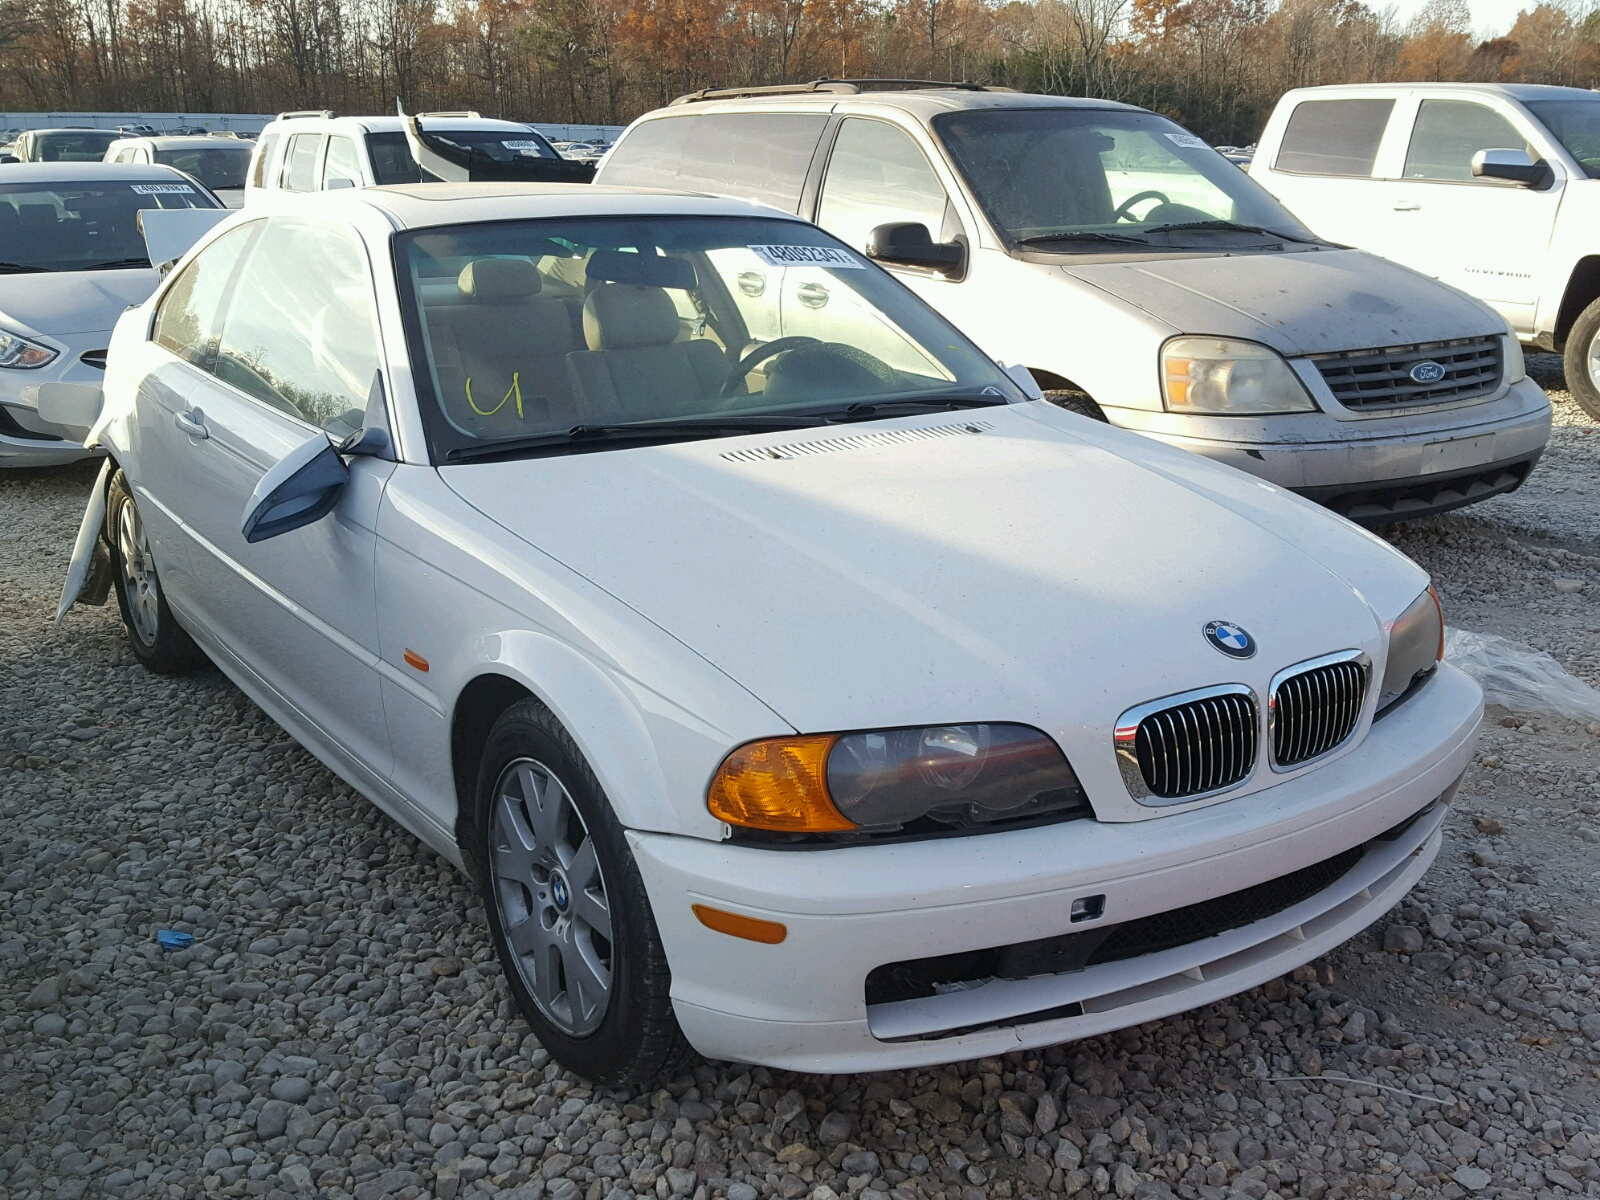 Auto Auction Ended On Vin Wbaam3341yfp74501 2000 Bmw 323i